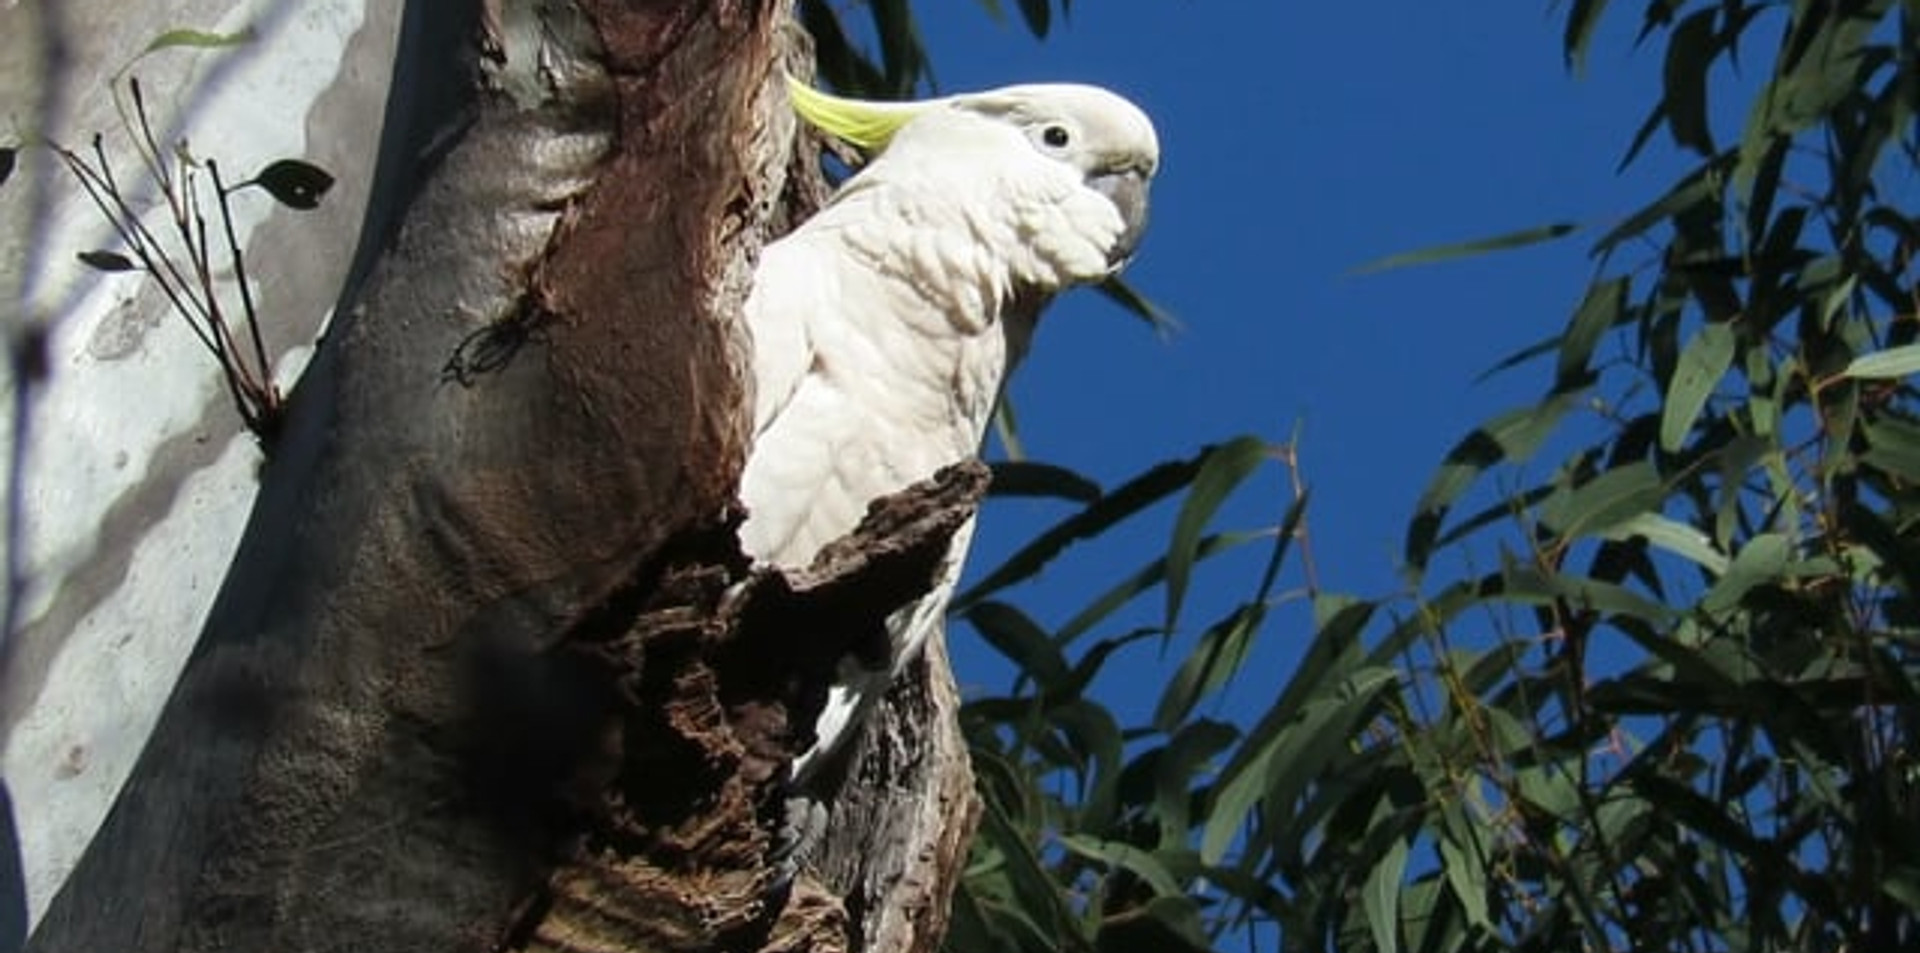 Sulphur-crested Cockatoo at nesting hollow